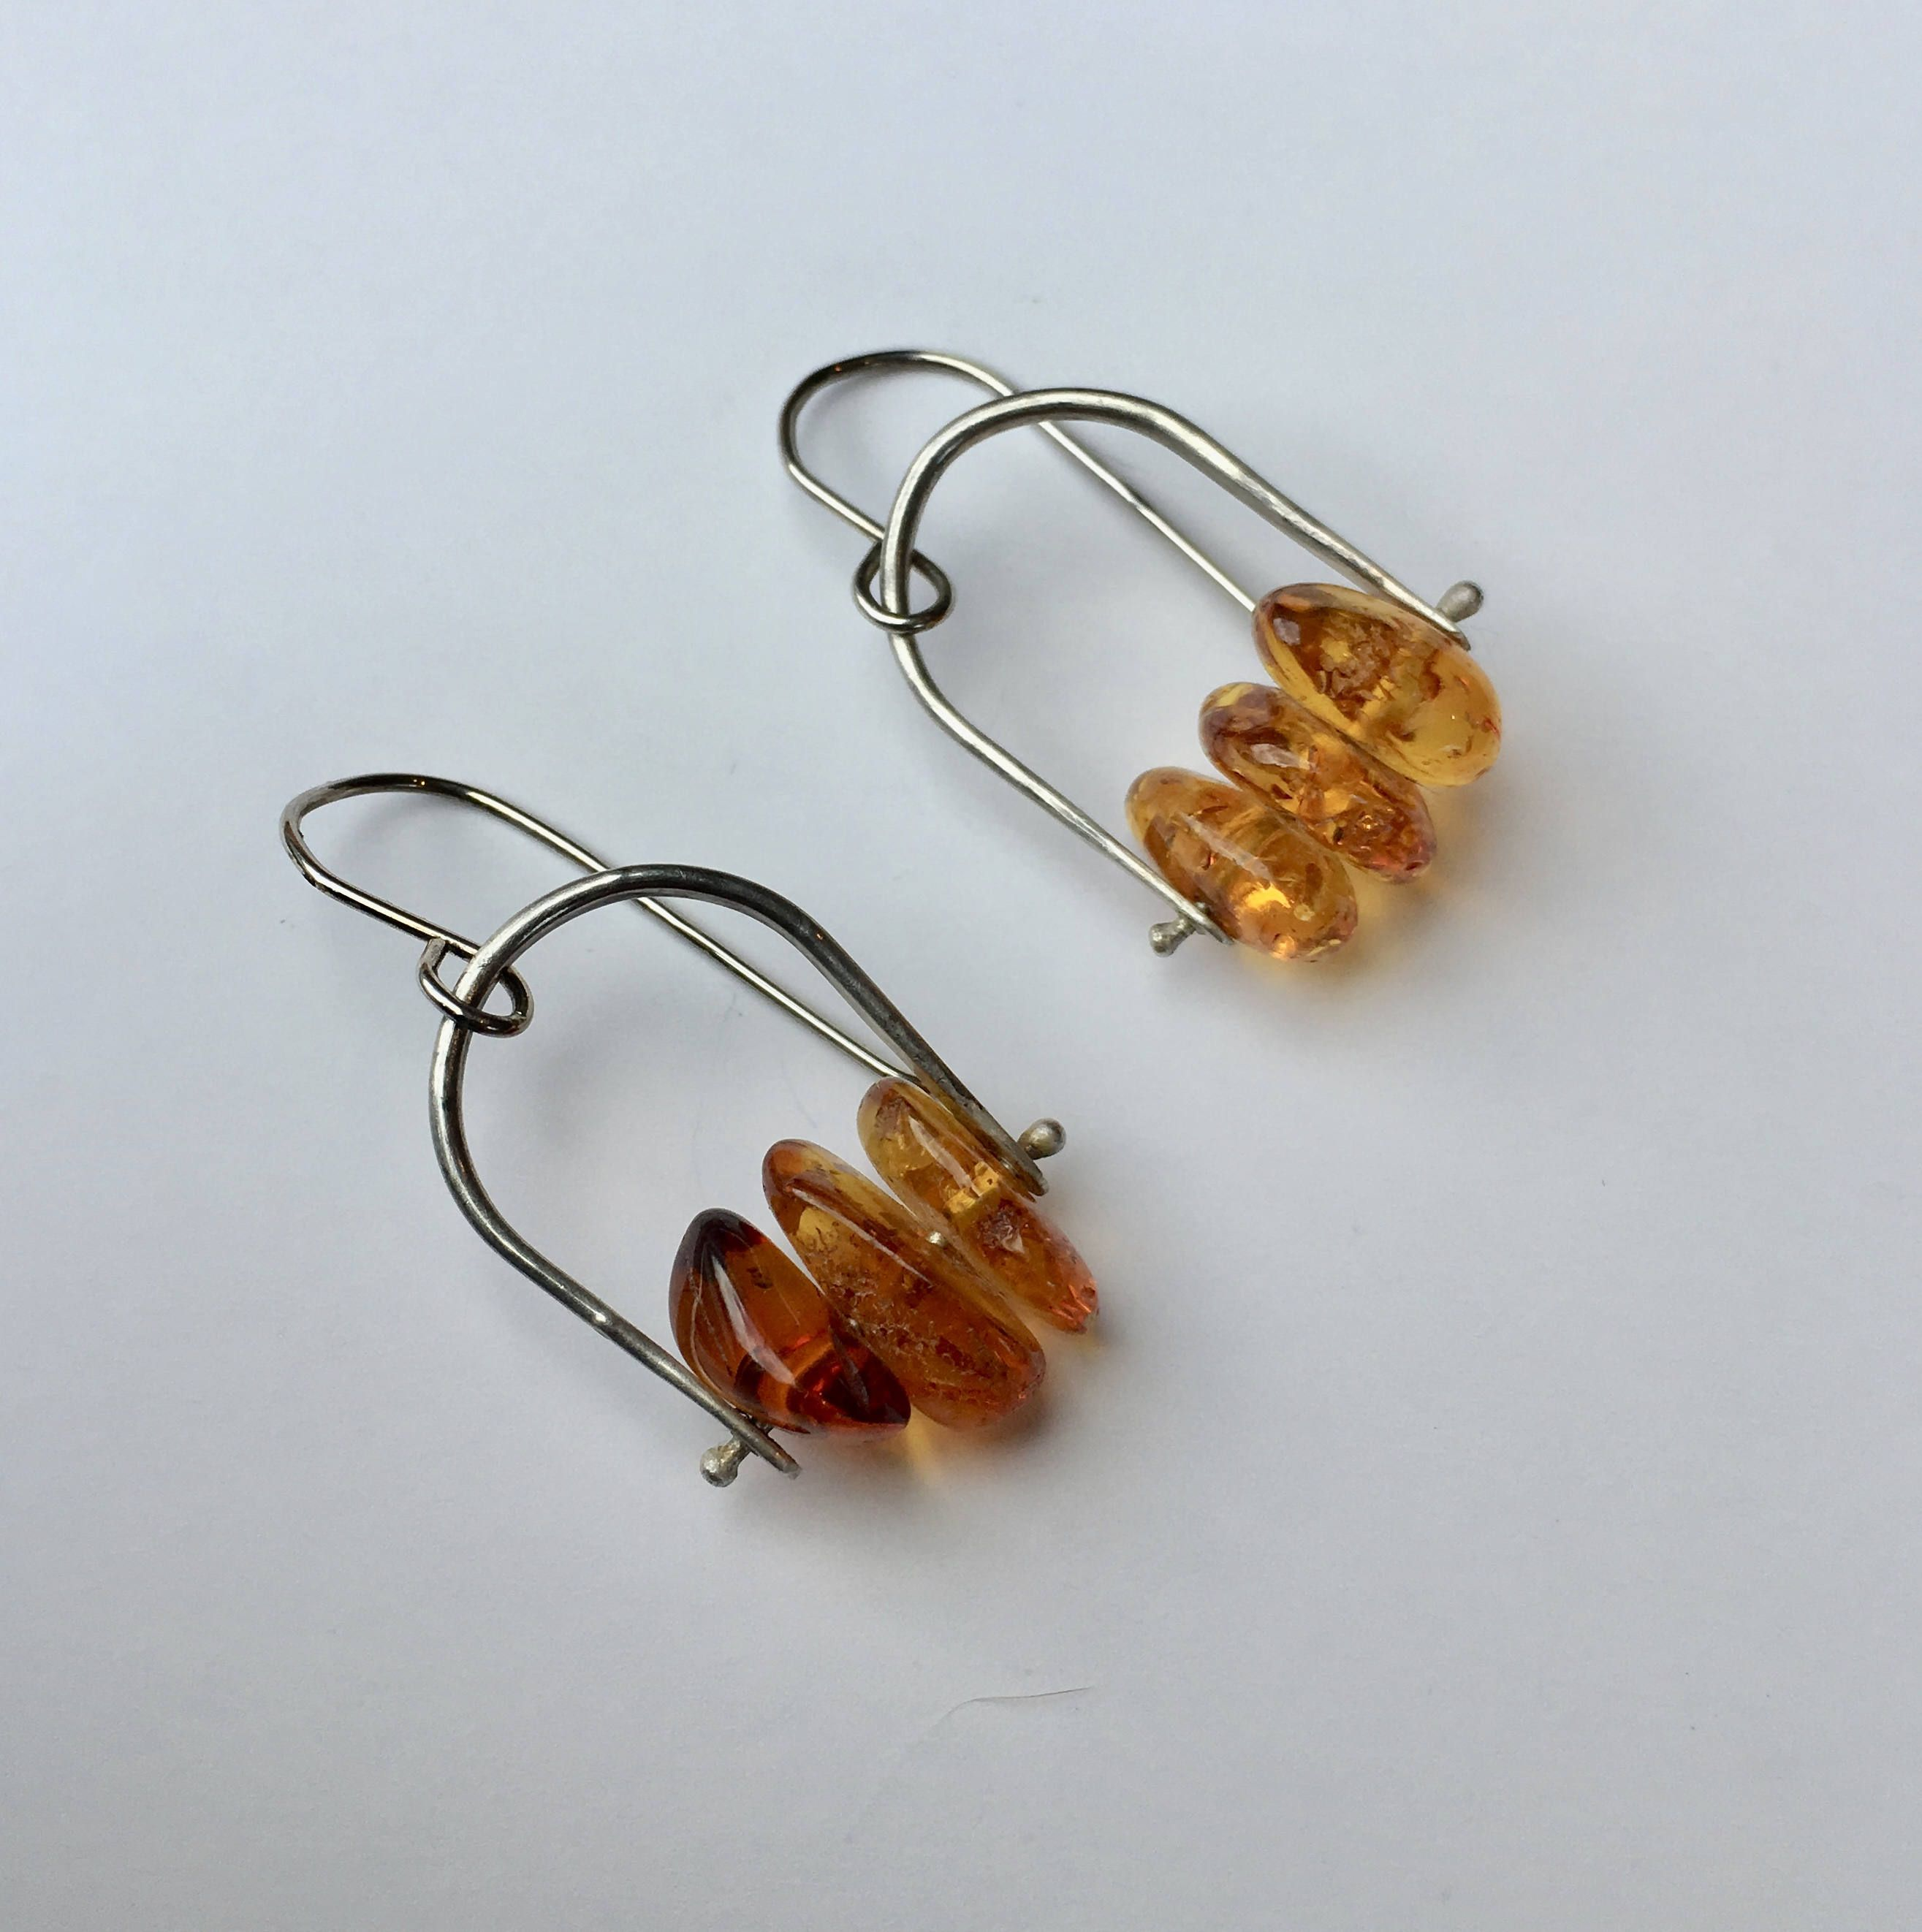 Balti Amber Earrings, Dangle Earrings, Amber Earrings, Amber Jewellery,  Amber, Silver Earrings, Earrings For Women, Gifts For Her, Beads